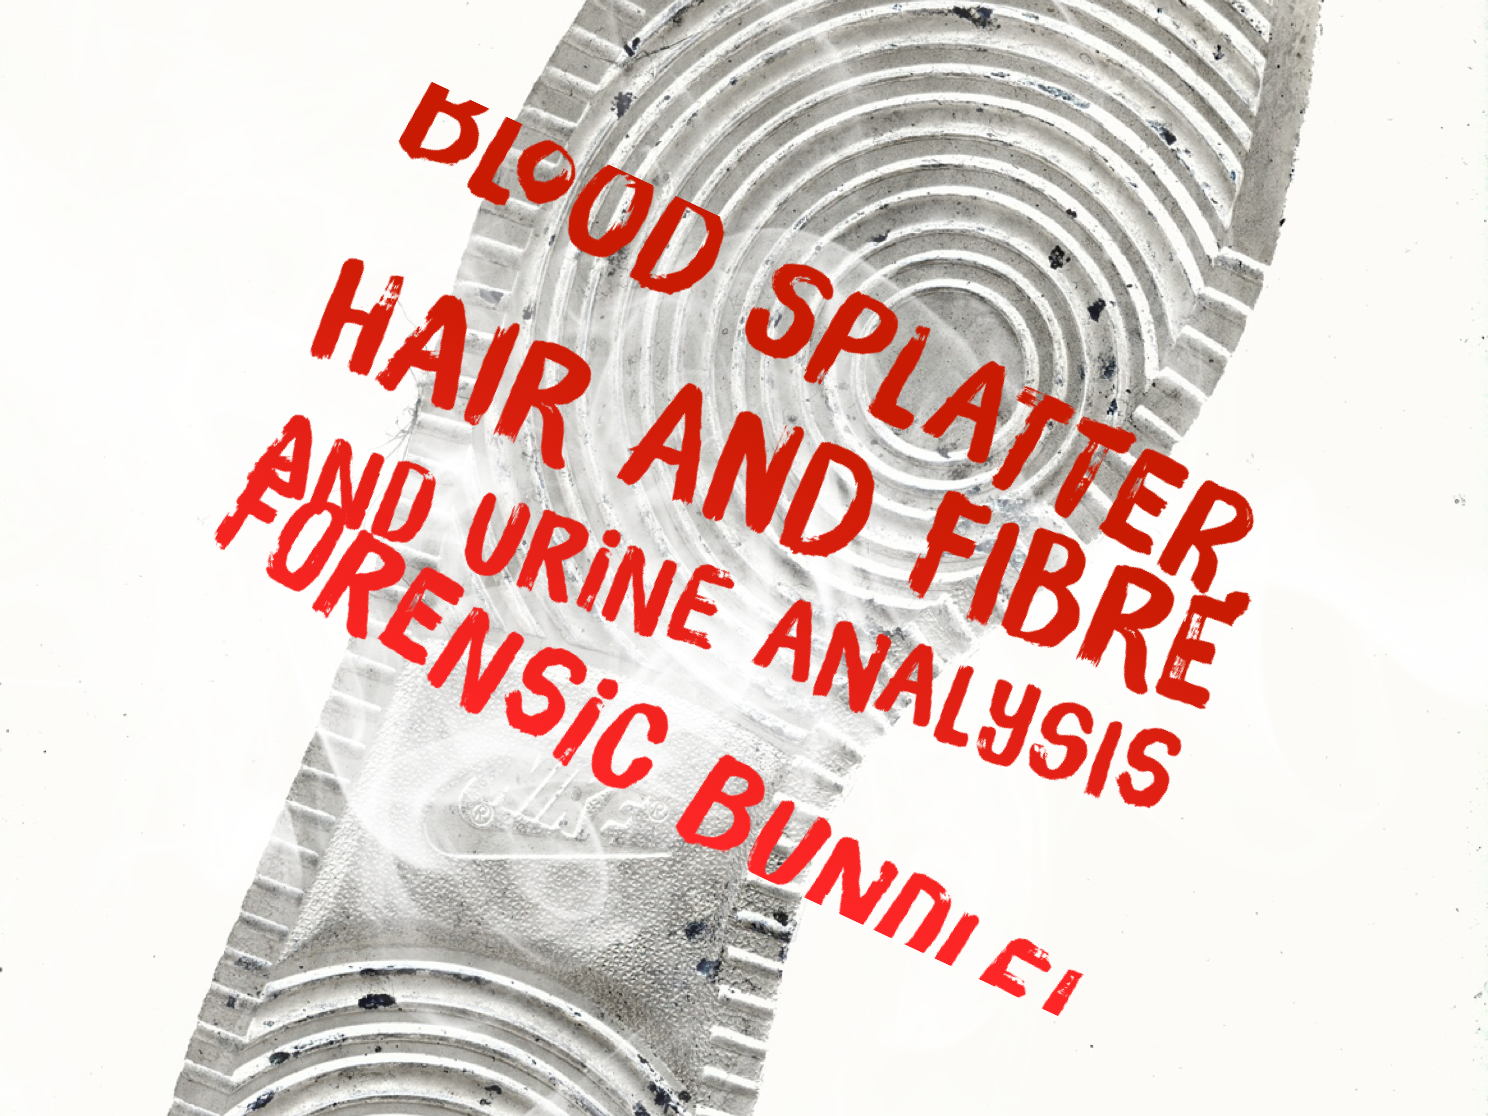 Forensic Murder Mystery Project (bloodsplatter, hair and fibre and urine analysis) - KS3/KS4 Science and STEM